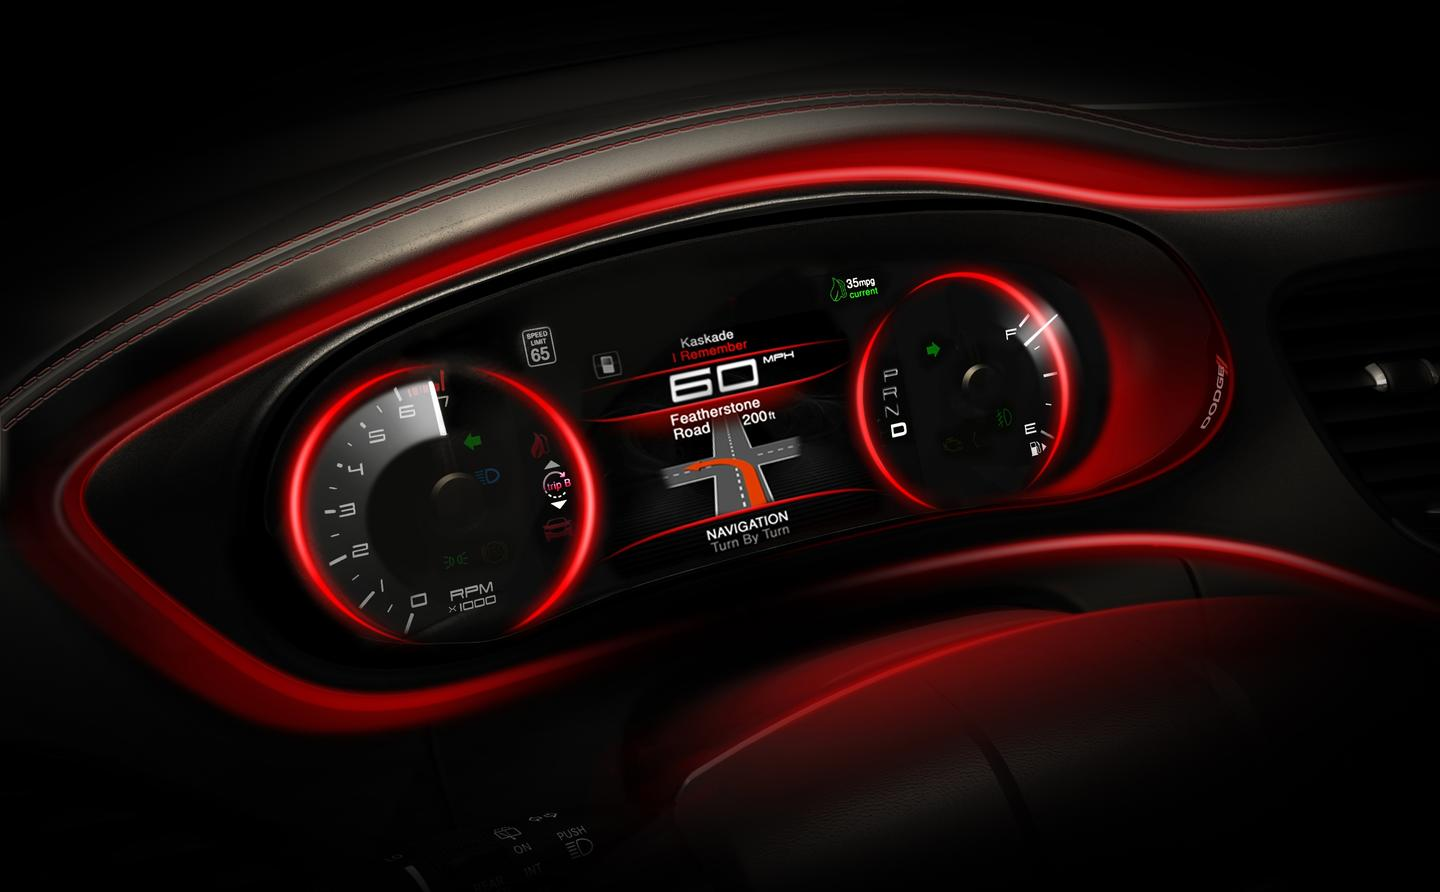 The 2013 Dodge Dart